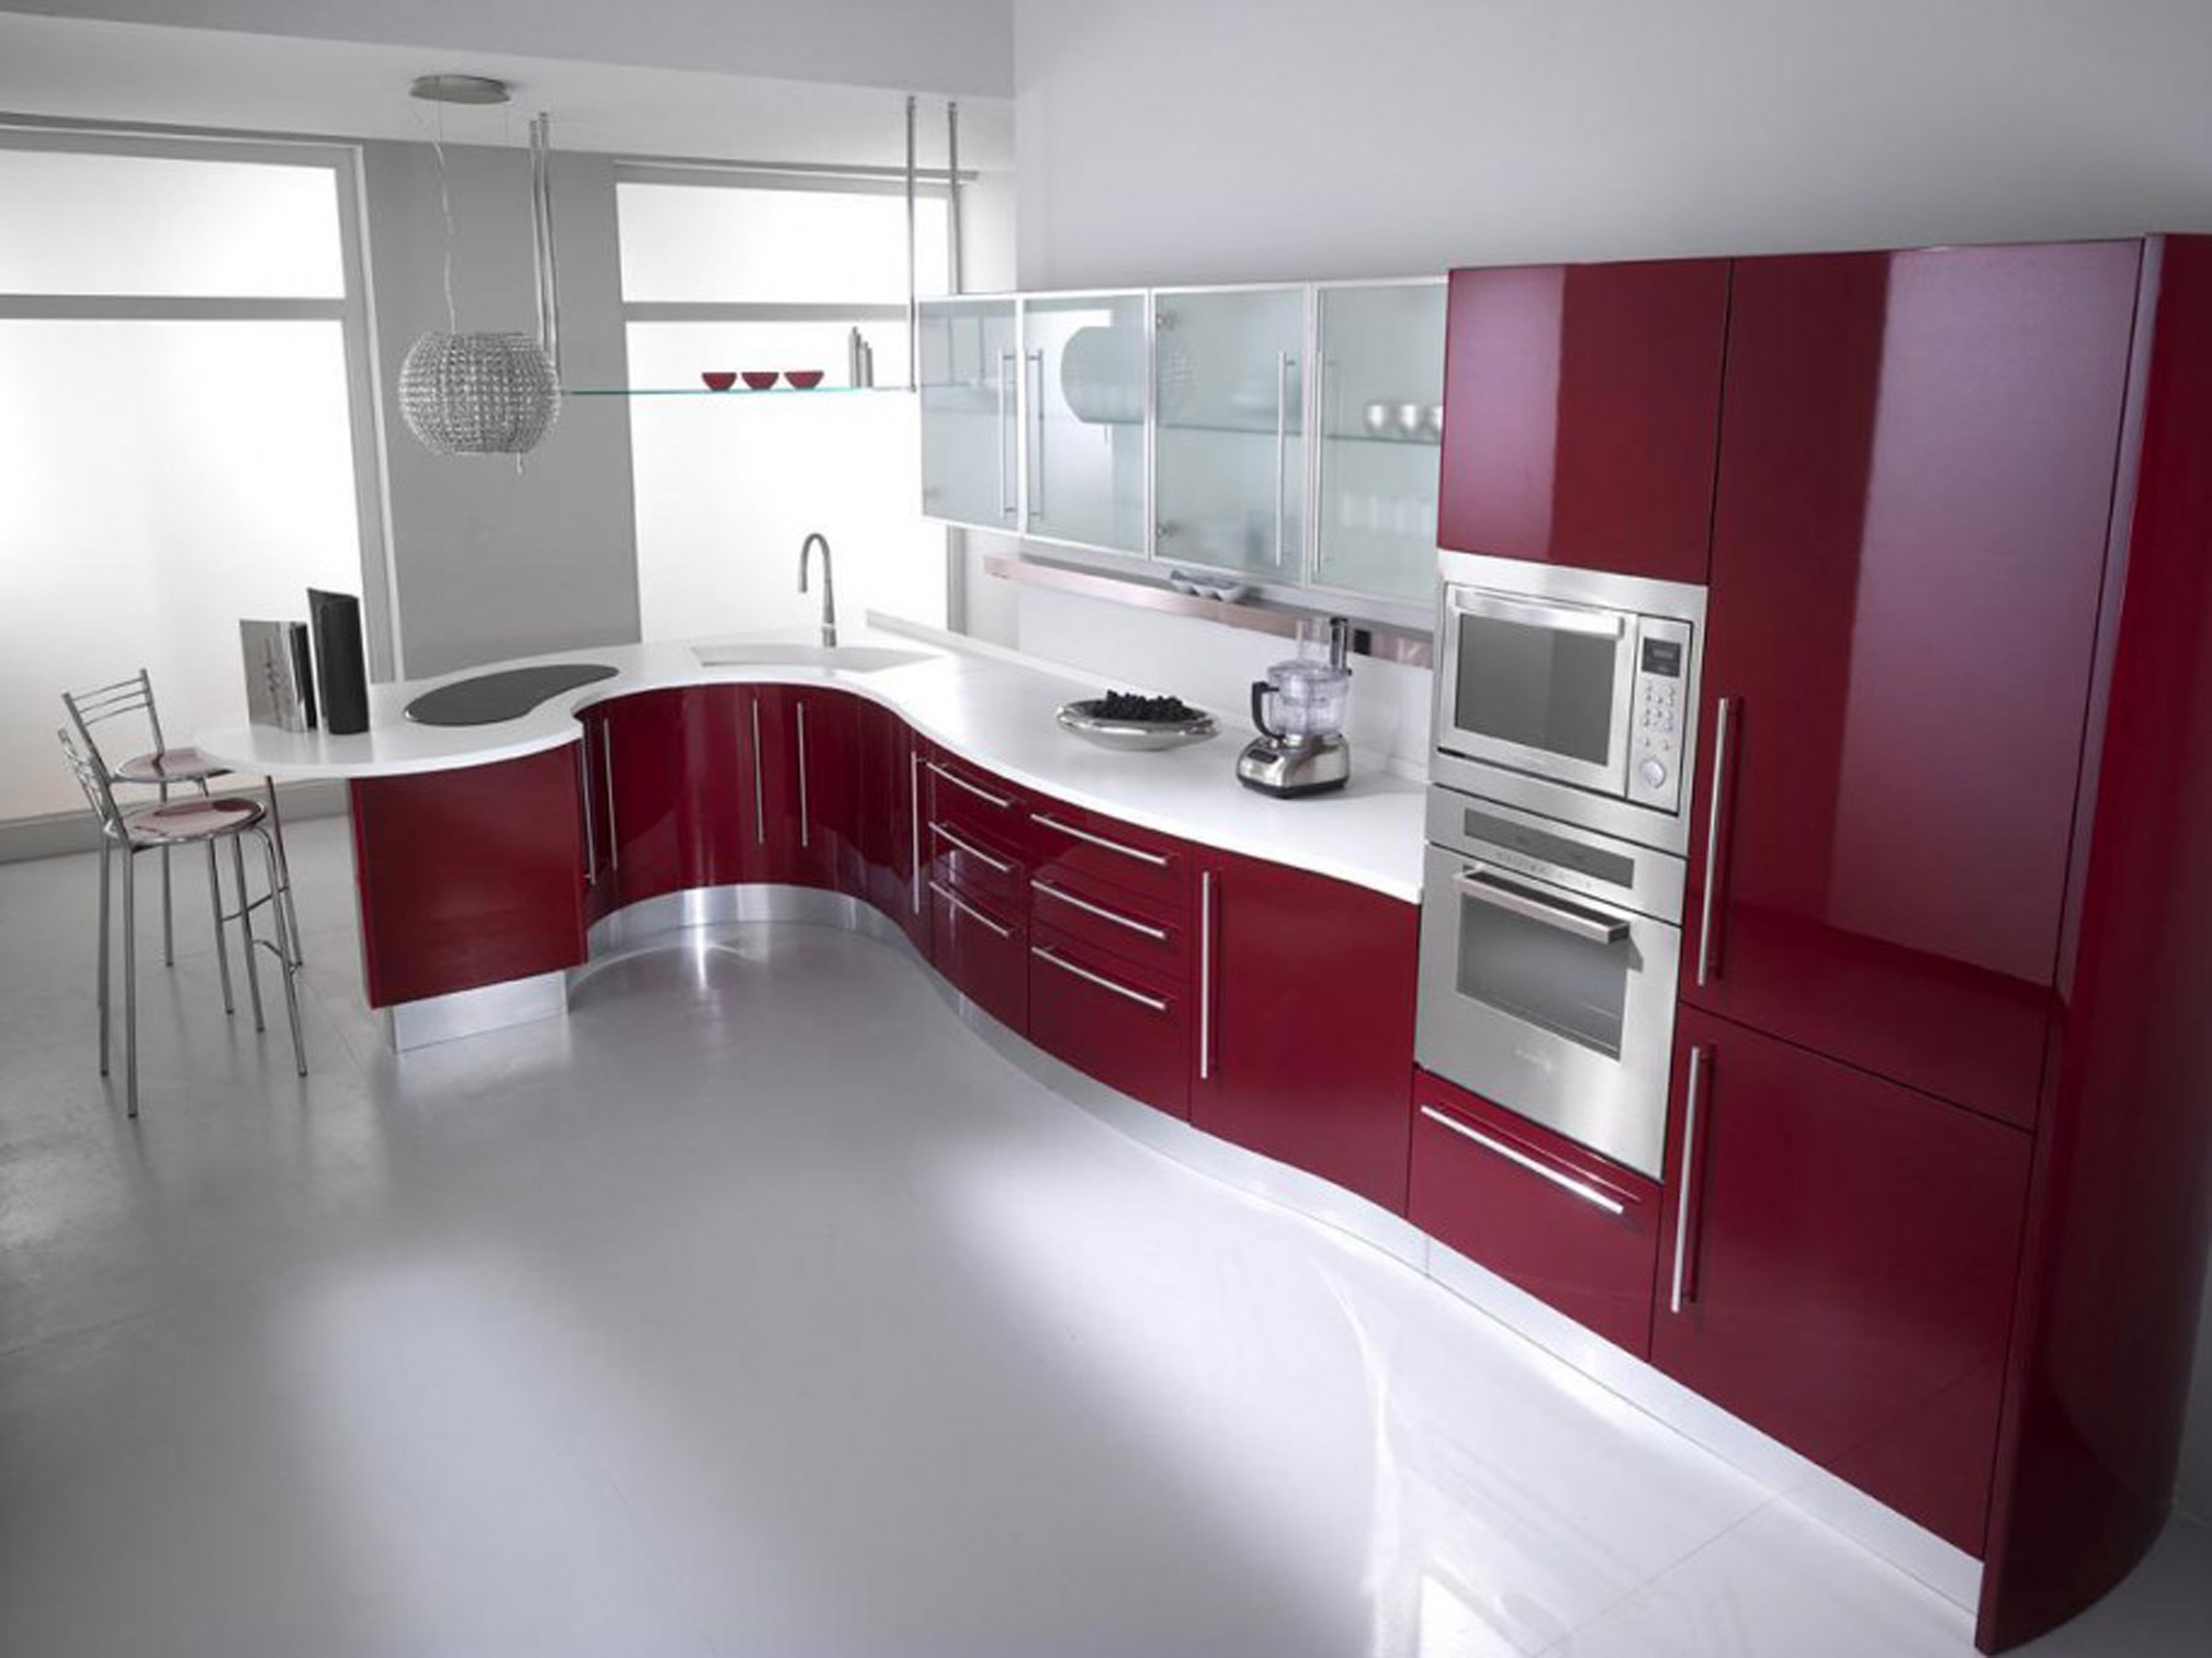 Modern Kitchen Designs With Natty Concept (Image 24 of 31)